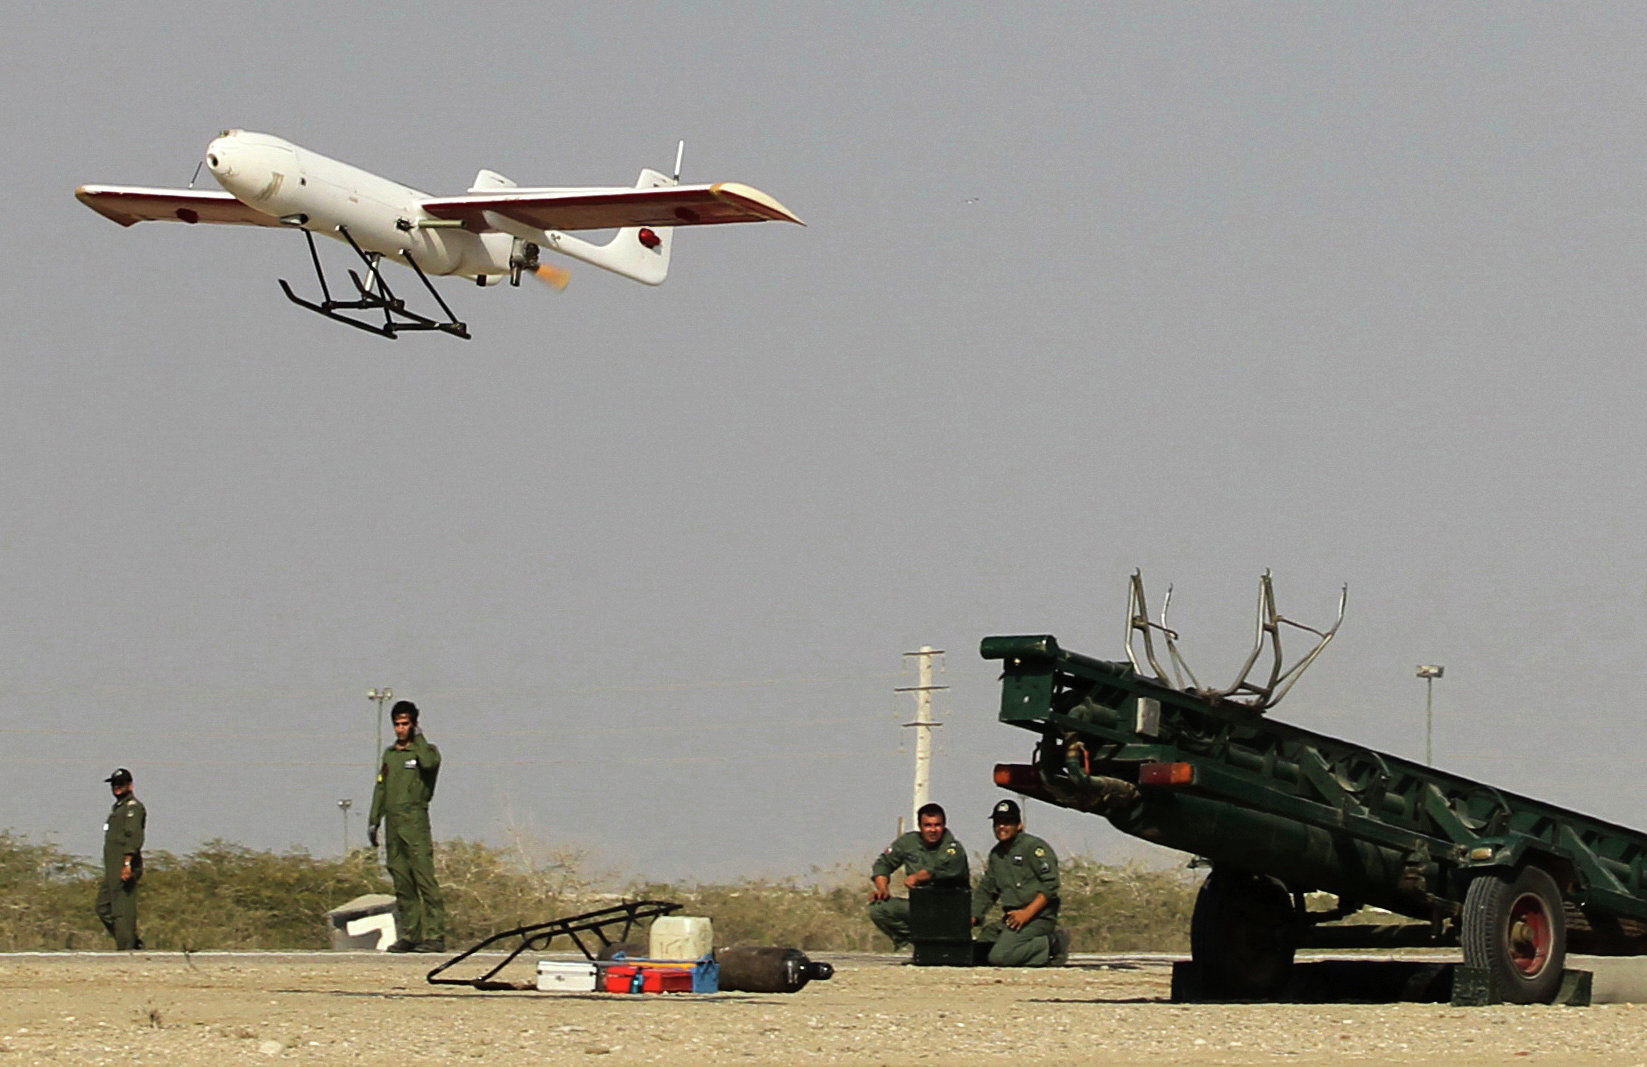 An Iranian made drone